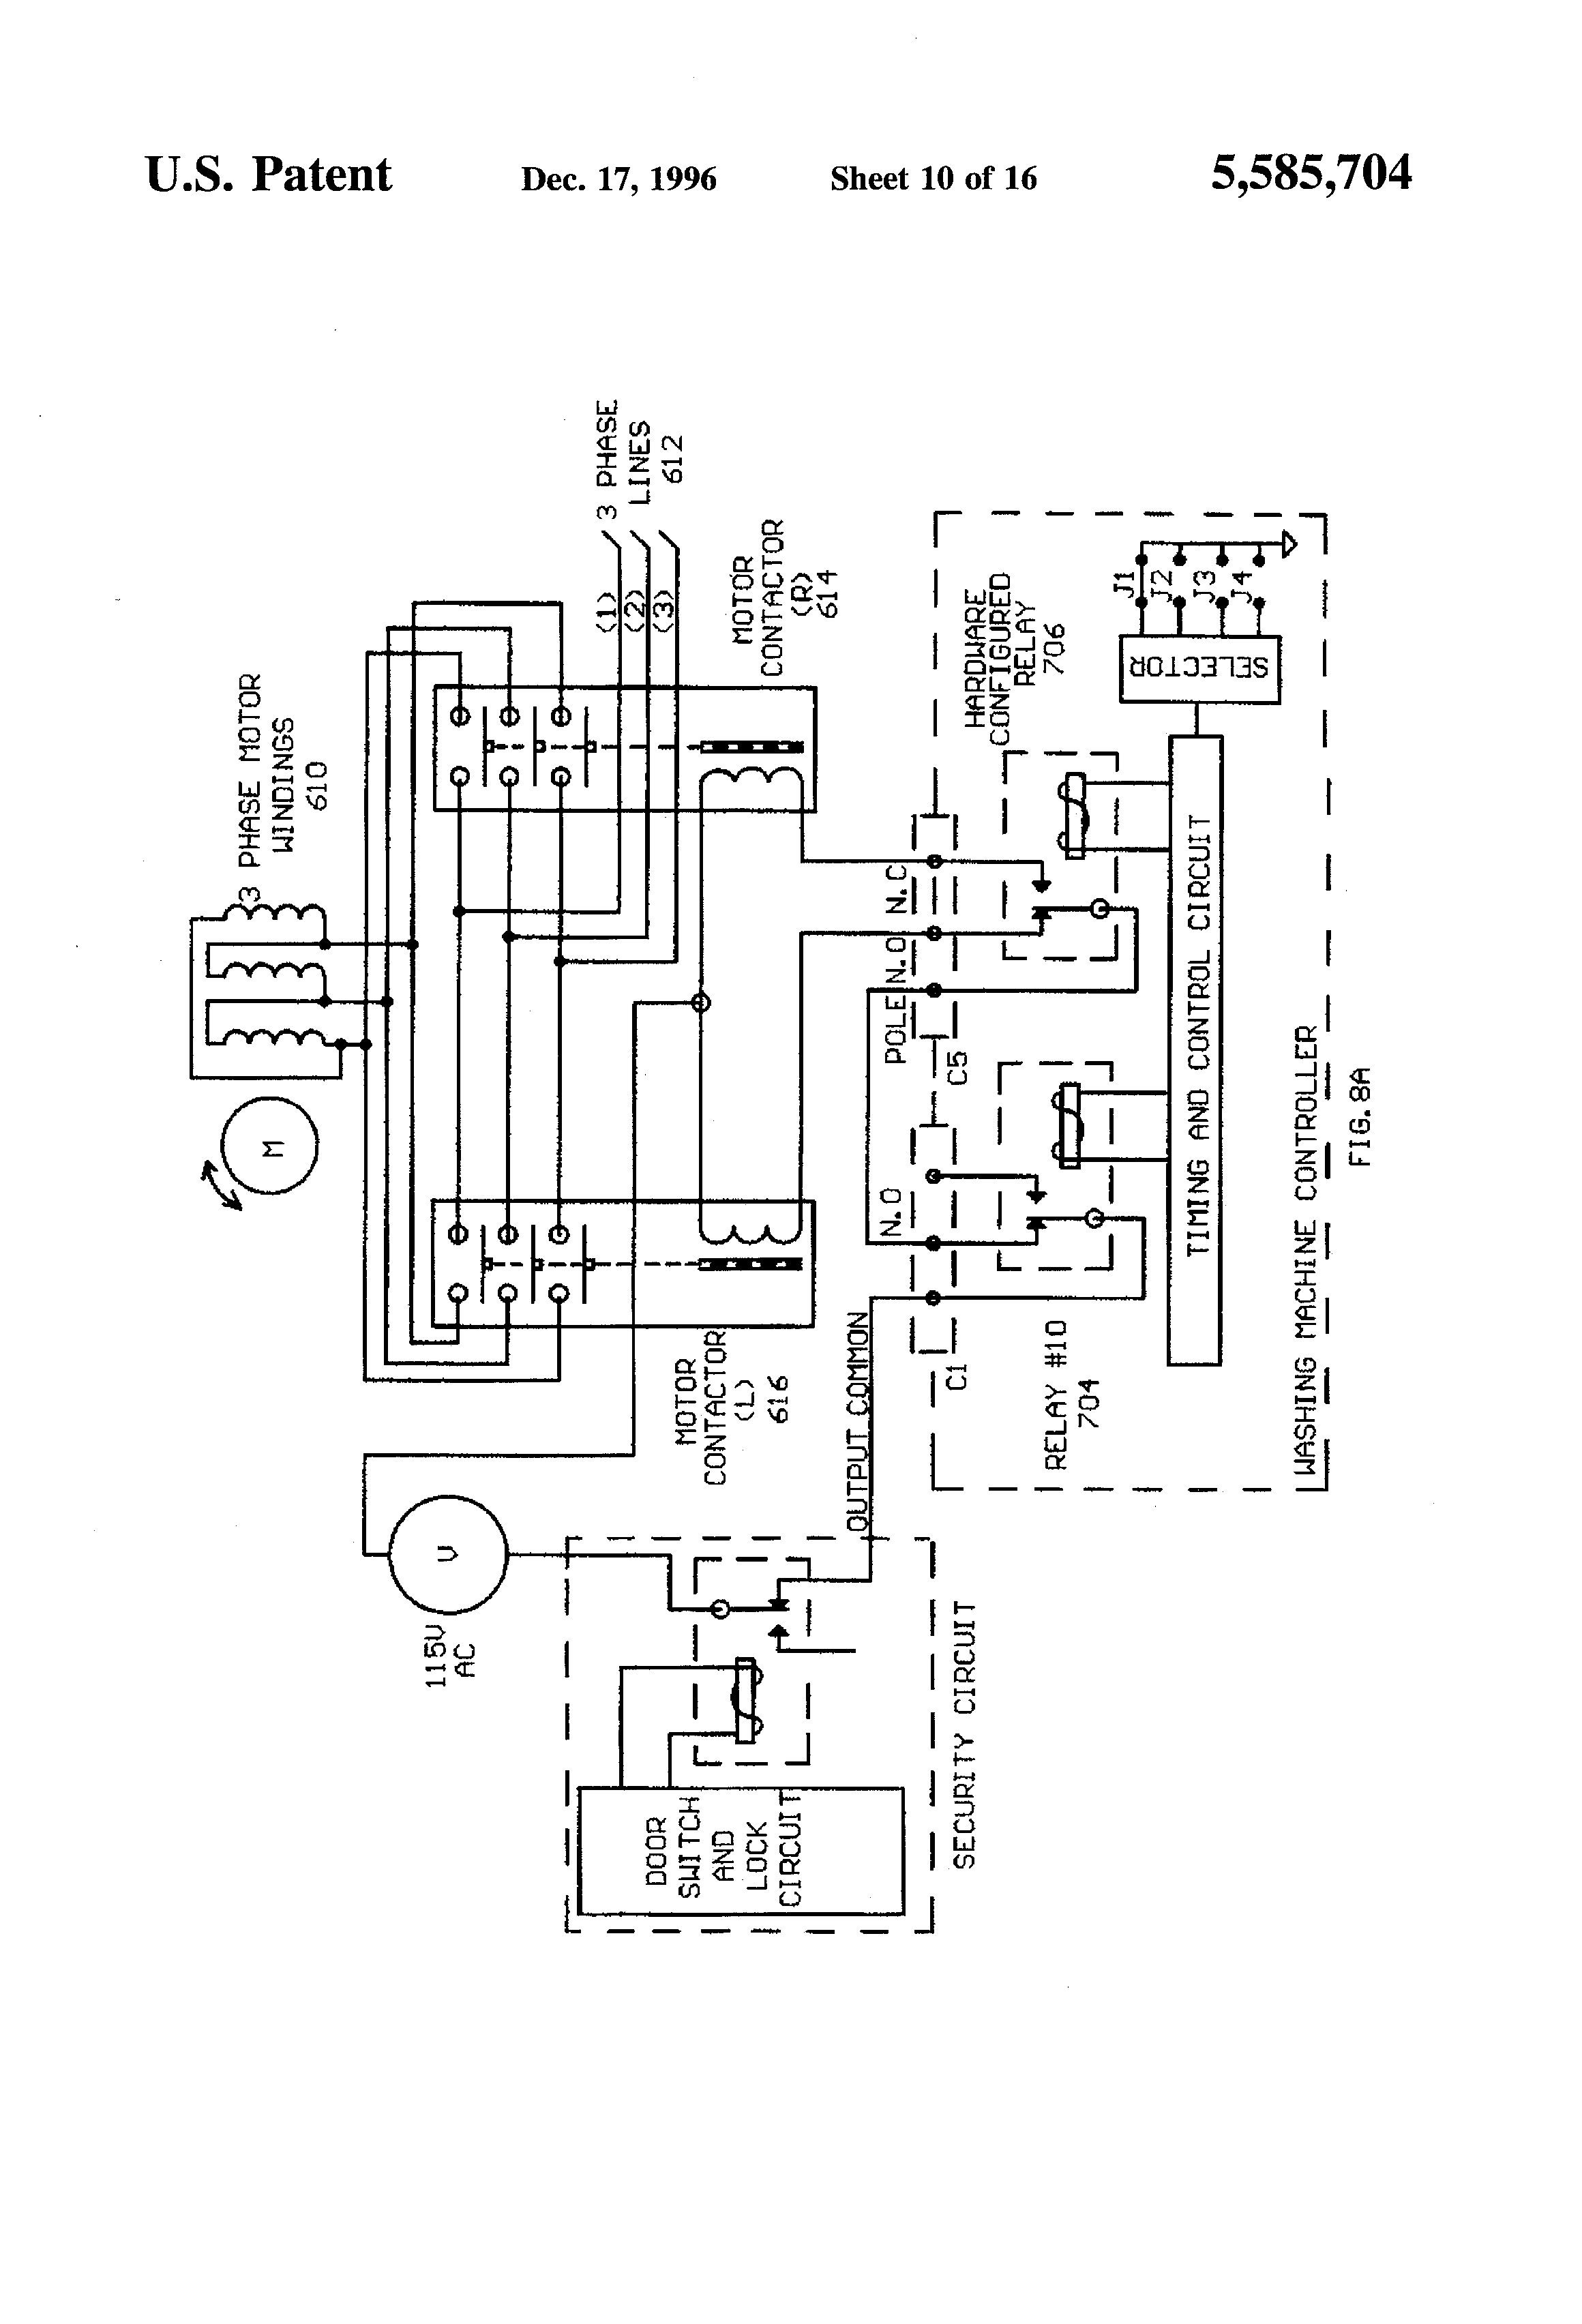 Wiring Diagram Of Washing Machine Timer , http://bookingritzcarlton.info/ wiring-diagram-of-wa... | Washing machine motor, Diagram, Washing machinePinterest